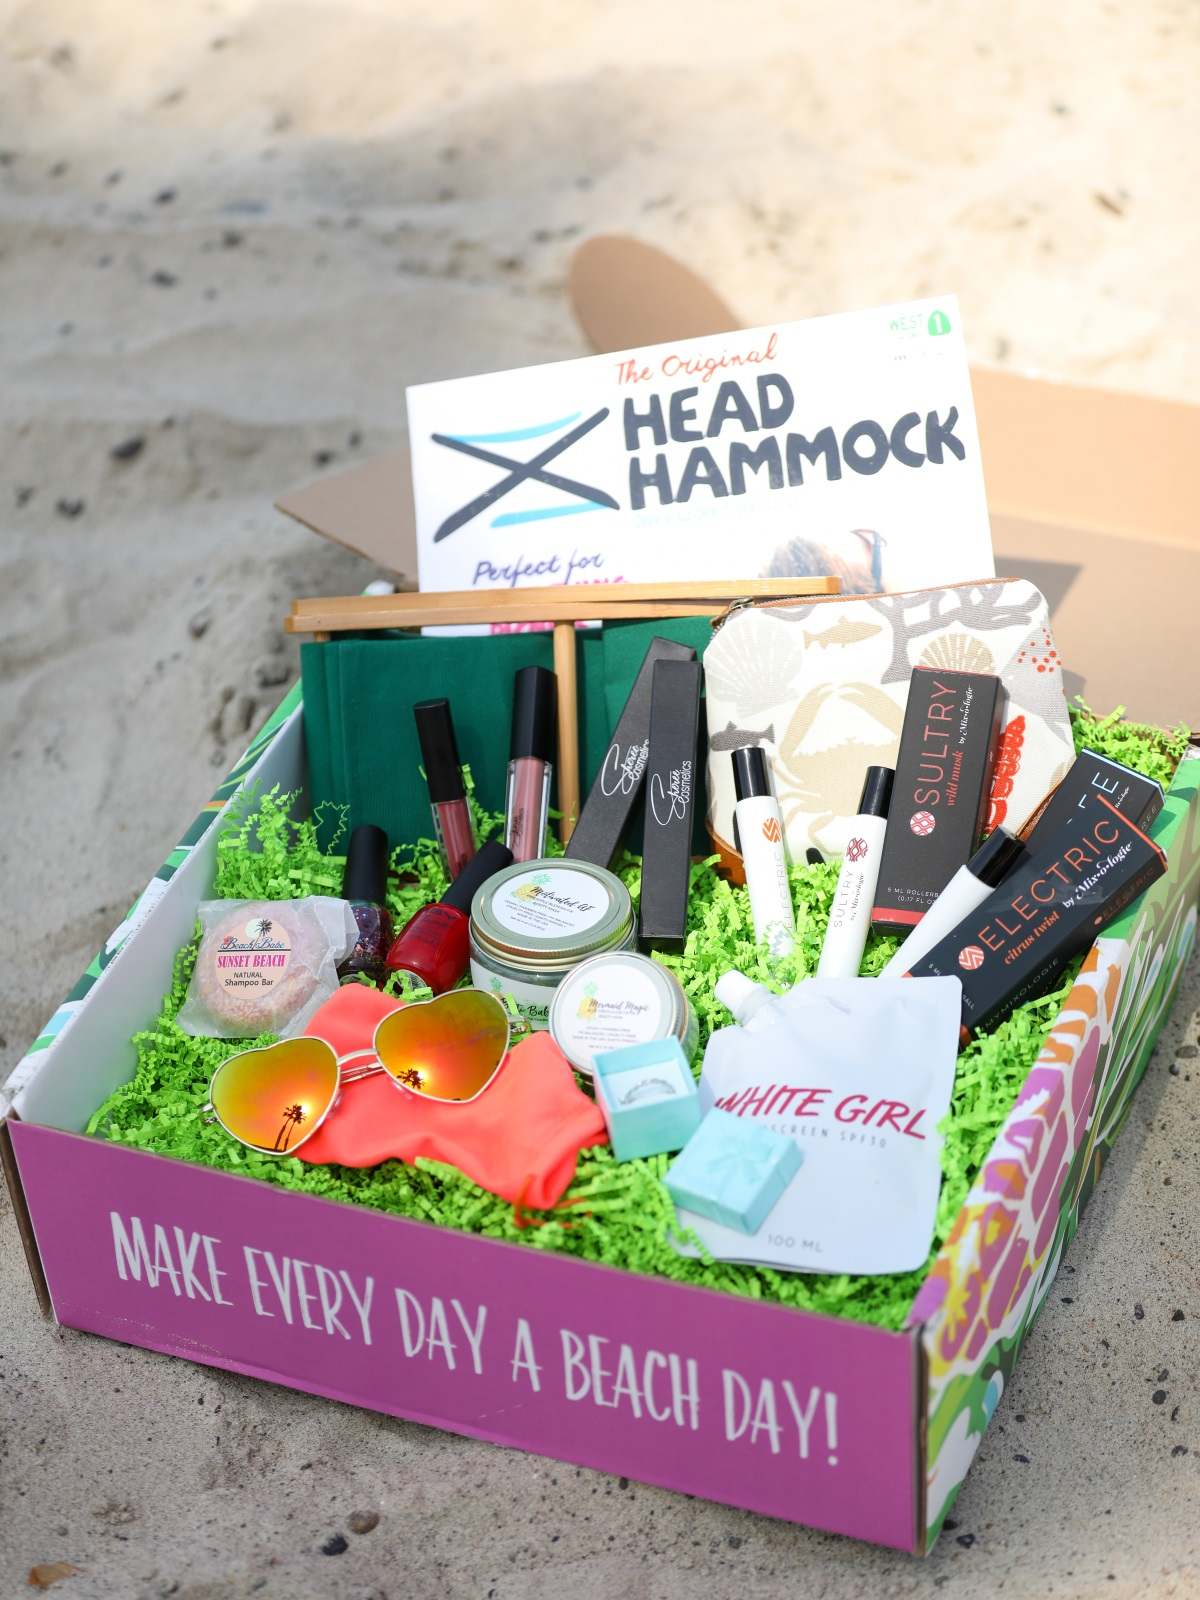 Make Everyday A Beach Day | Beach Box Monthly Subscription Box | Orange County Fashion and Lifestyle Blog